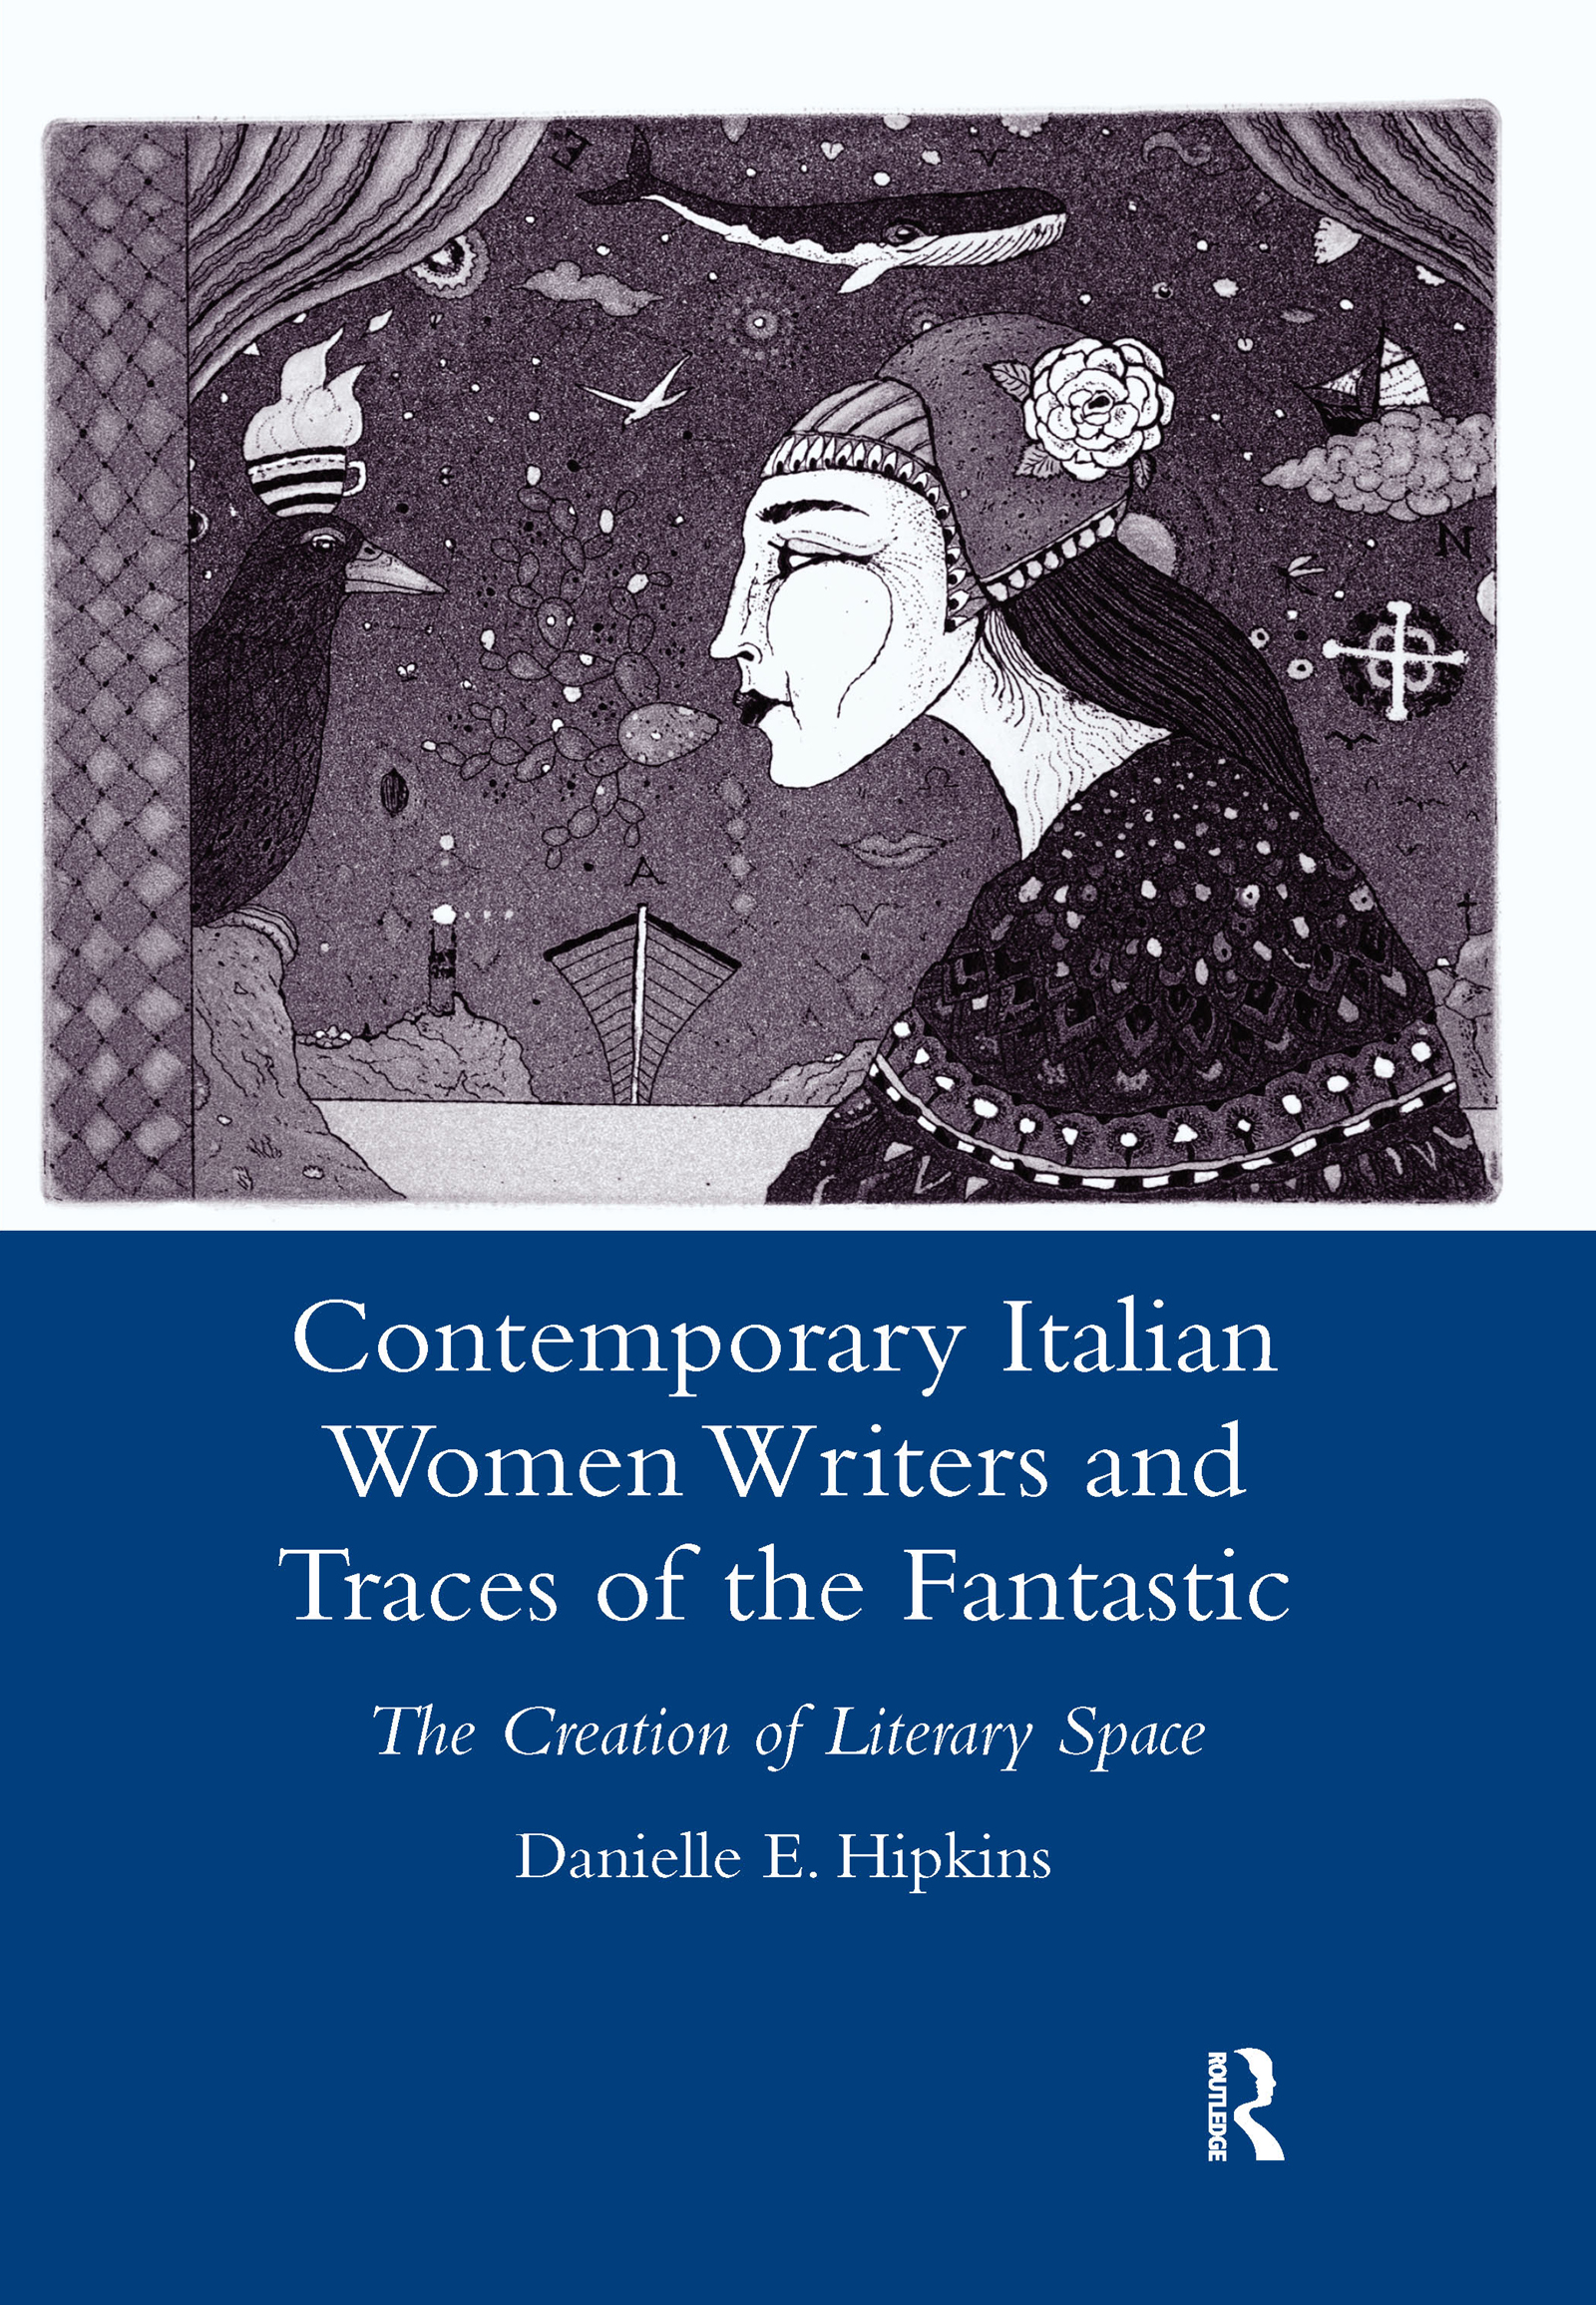 Contemporary Italian Women Writers and Traces of the Fantastic: The Creation of Literary Space, 1st Edition (Hardback) book cover